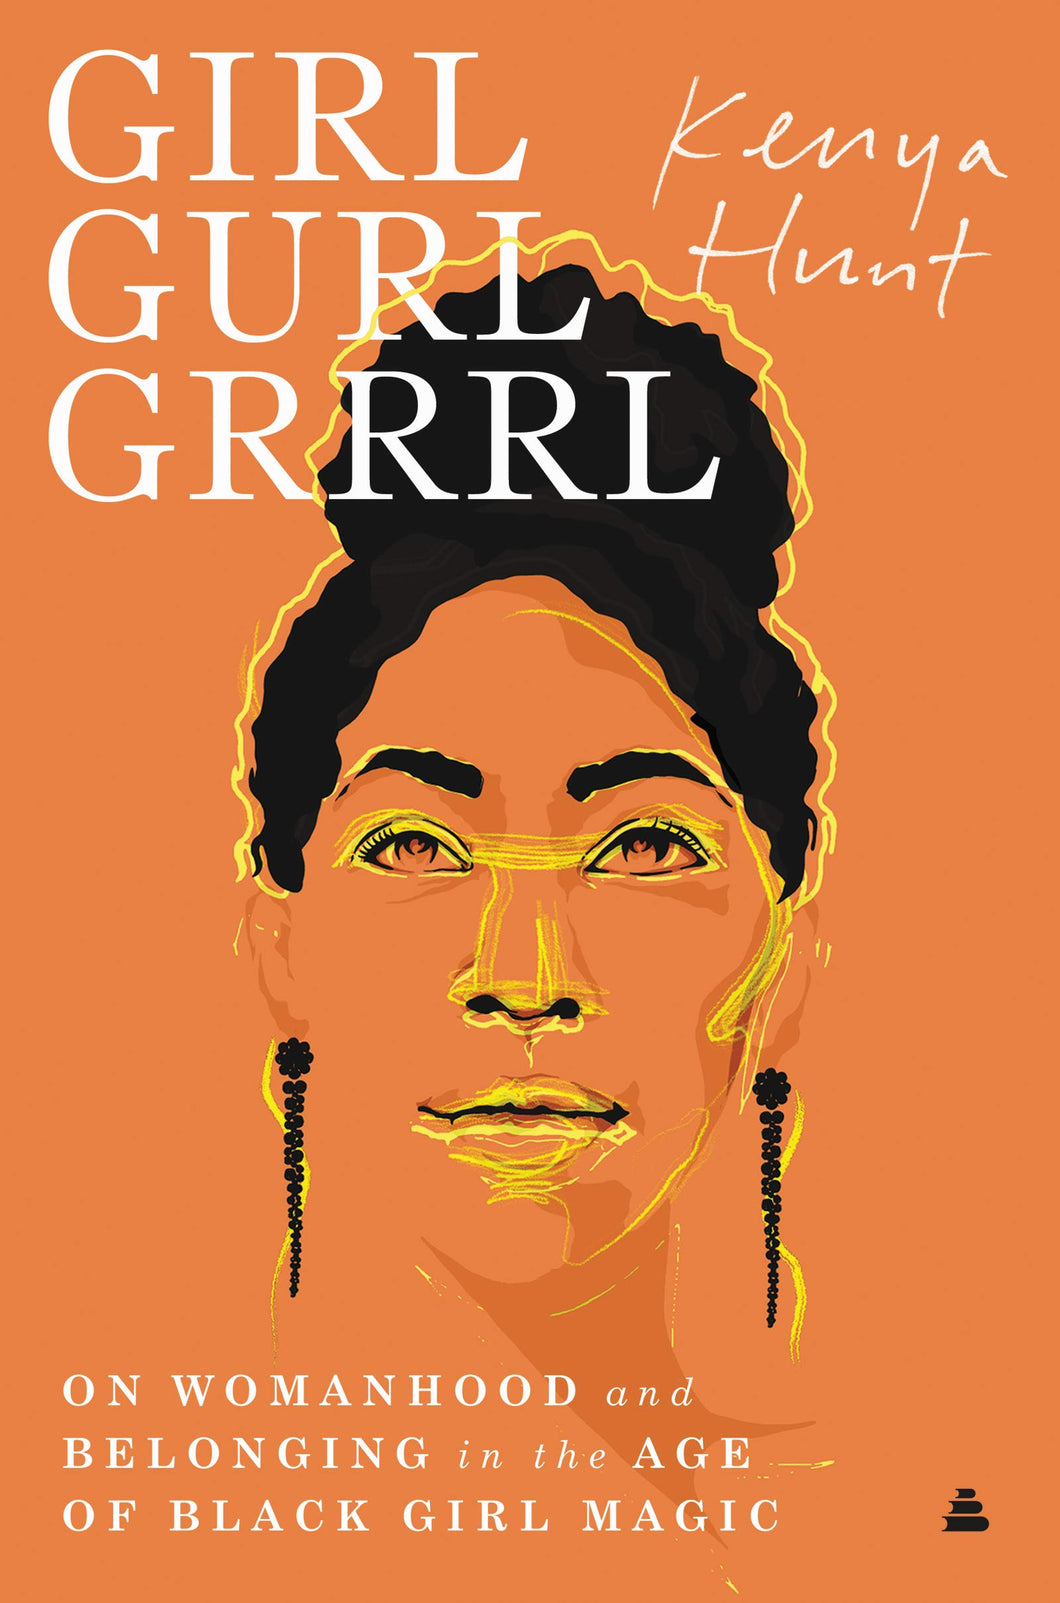 Girl Gurl Grrrl: On Womanhood and Belonging in the Age of Black Girl Magic by Kenya Hunt